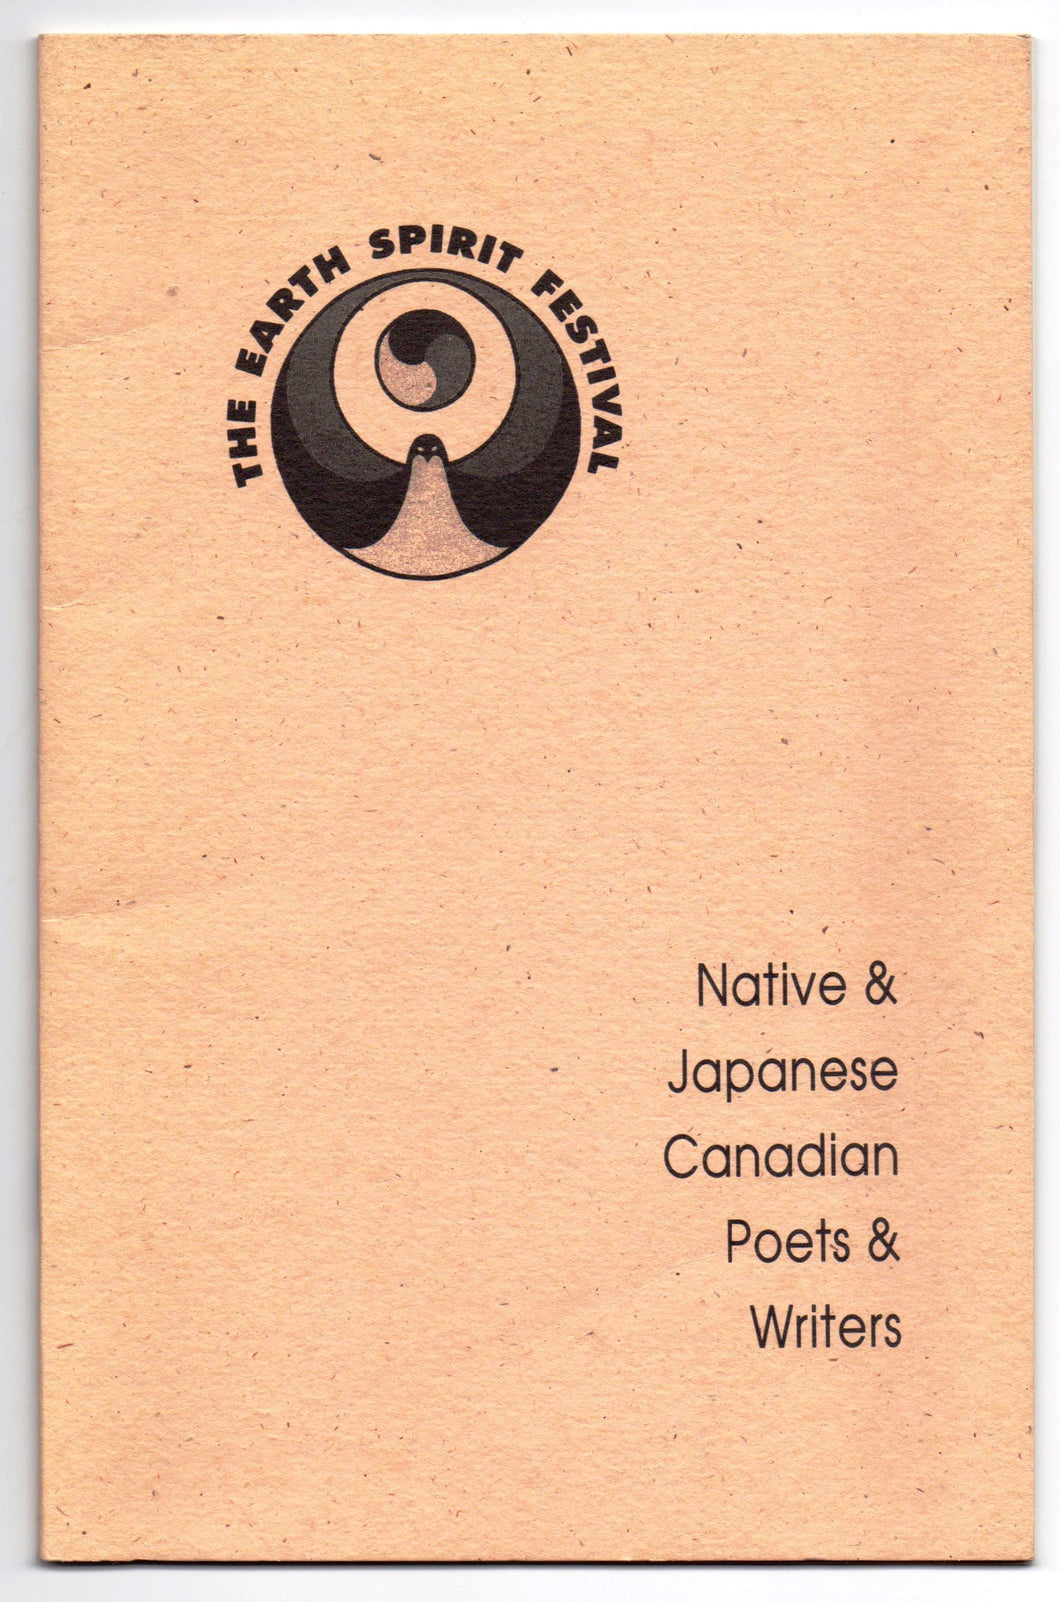 Native & Japanese Canadian Poets & Writers